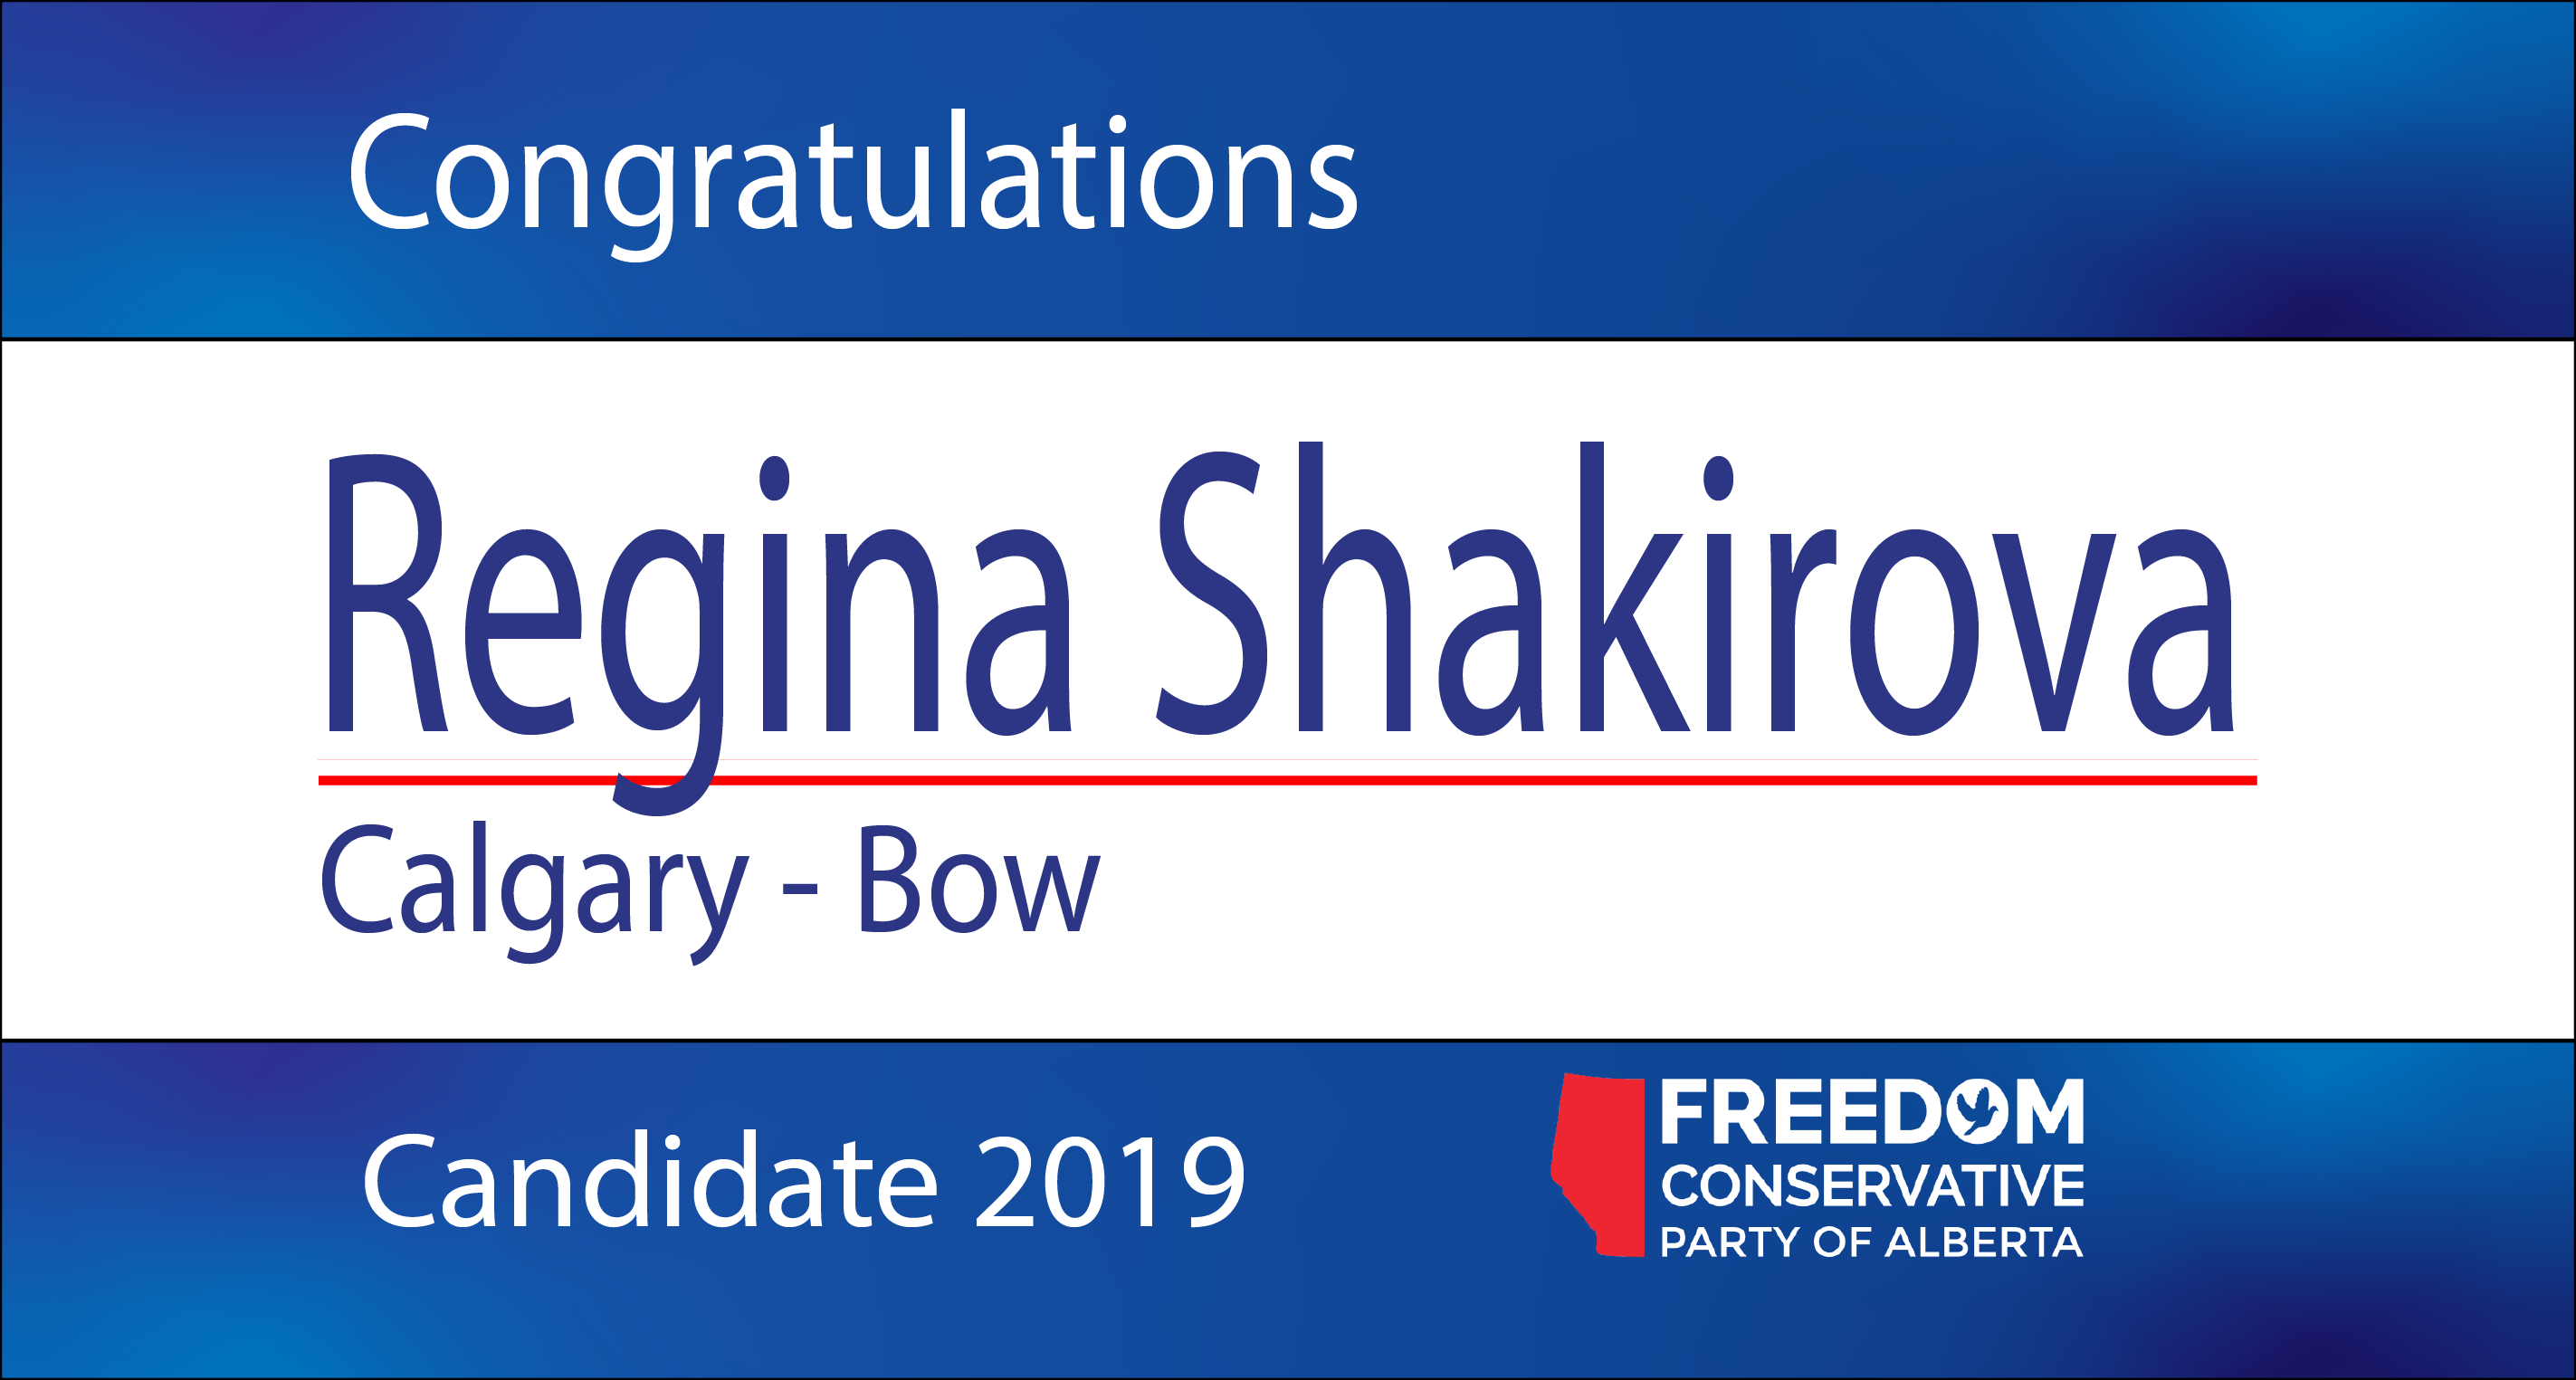 RELEASE: Regina Shakirova Nominated as FCP Candidate for Calgary - Bow